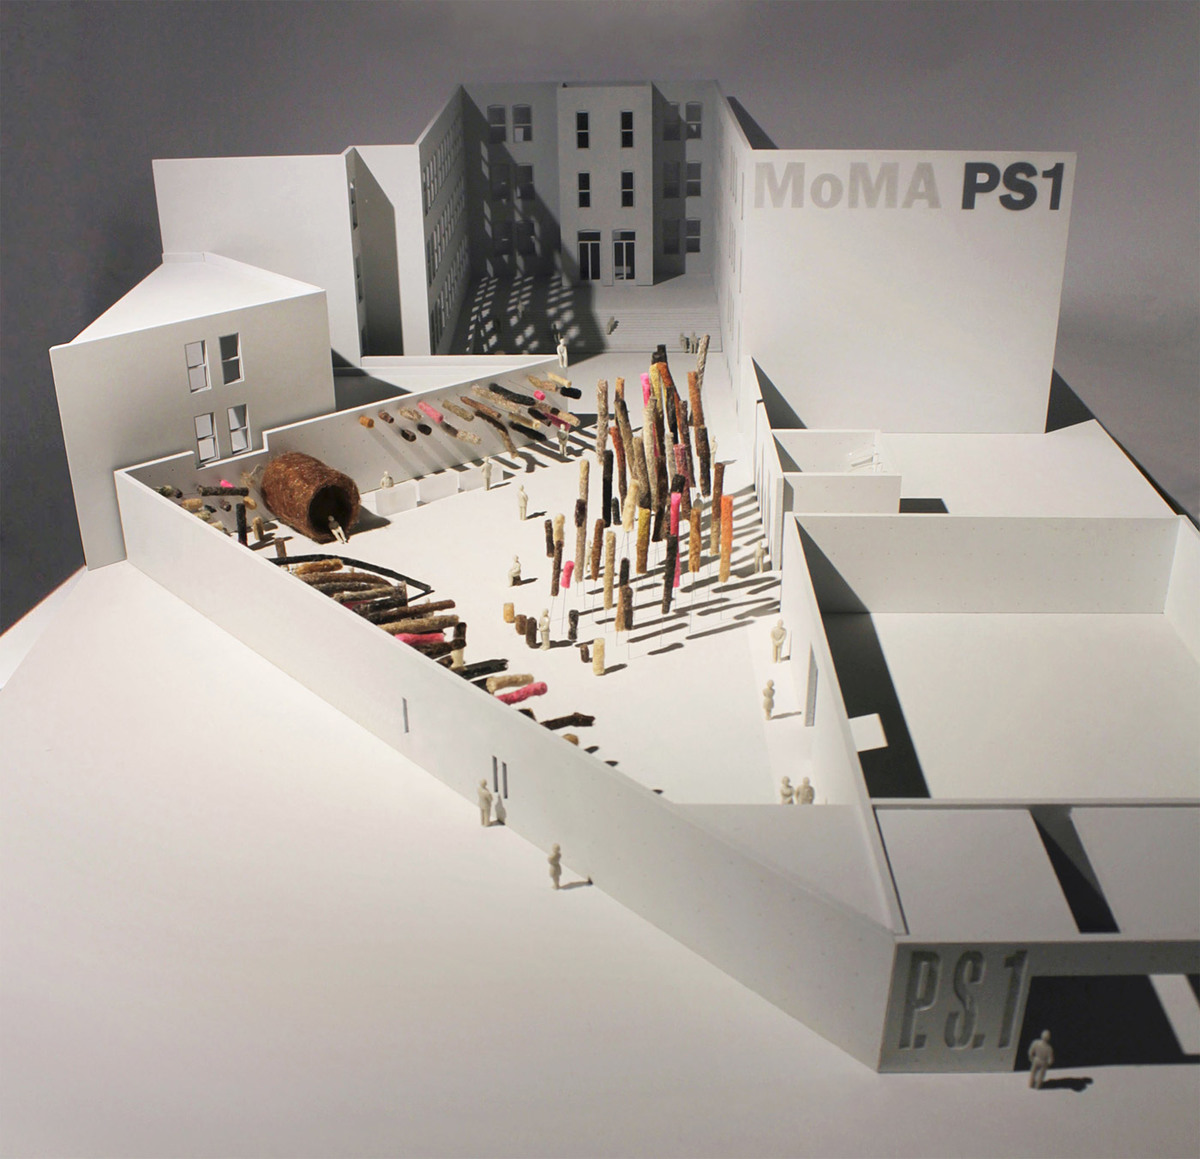 Model photo of MY HAIR IS AT MOMA PS1 by TempAgency (Photo: TempAgency)